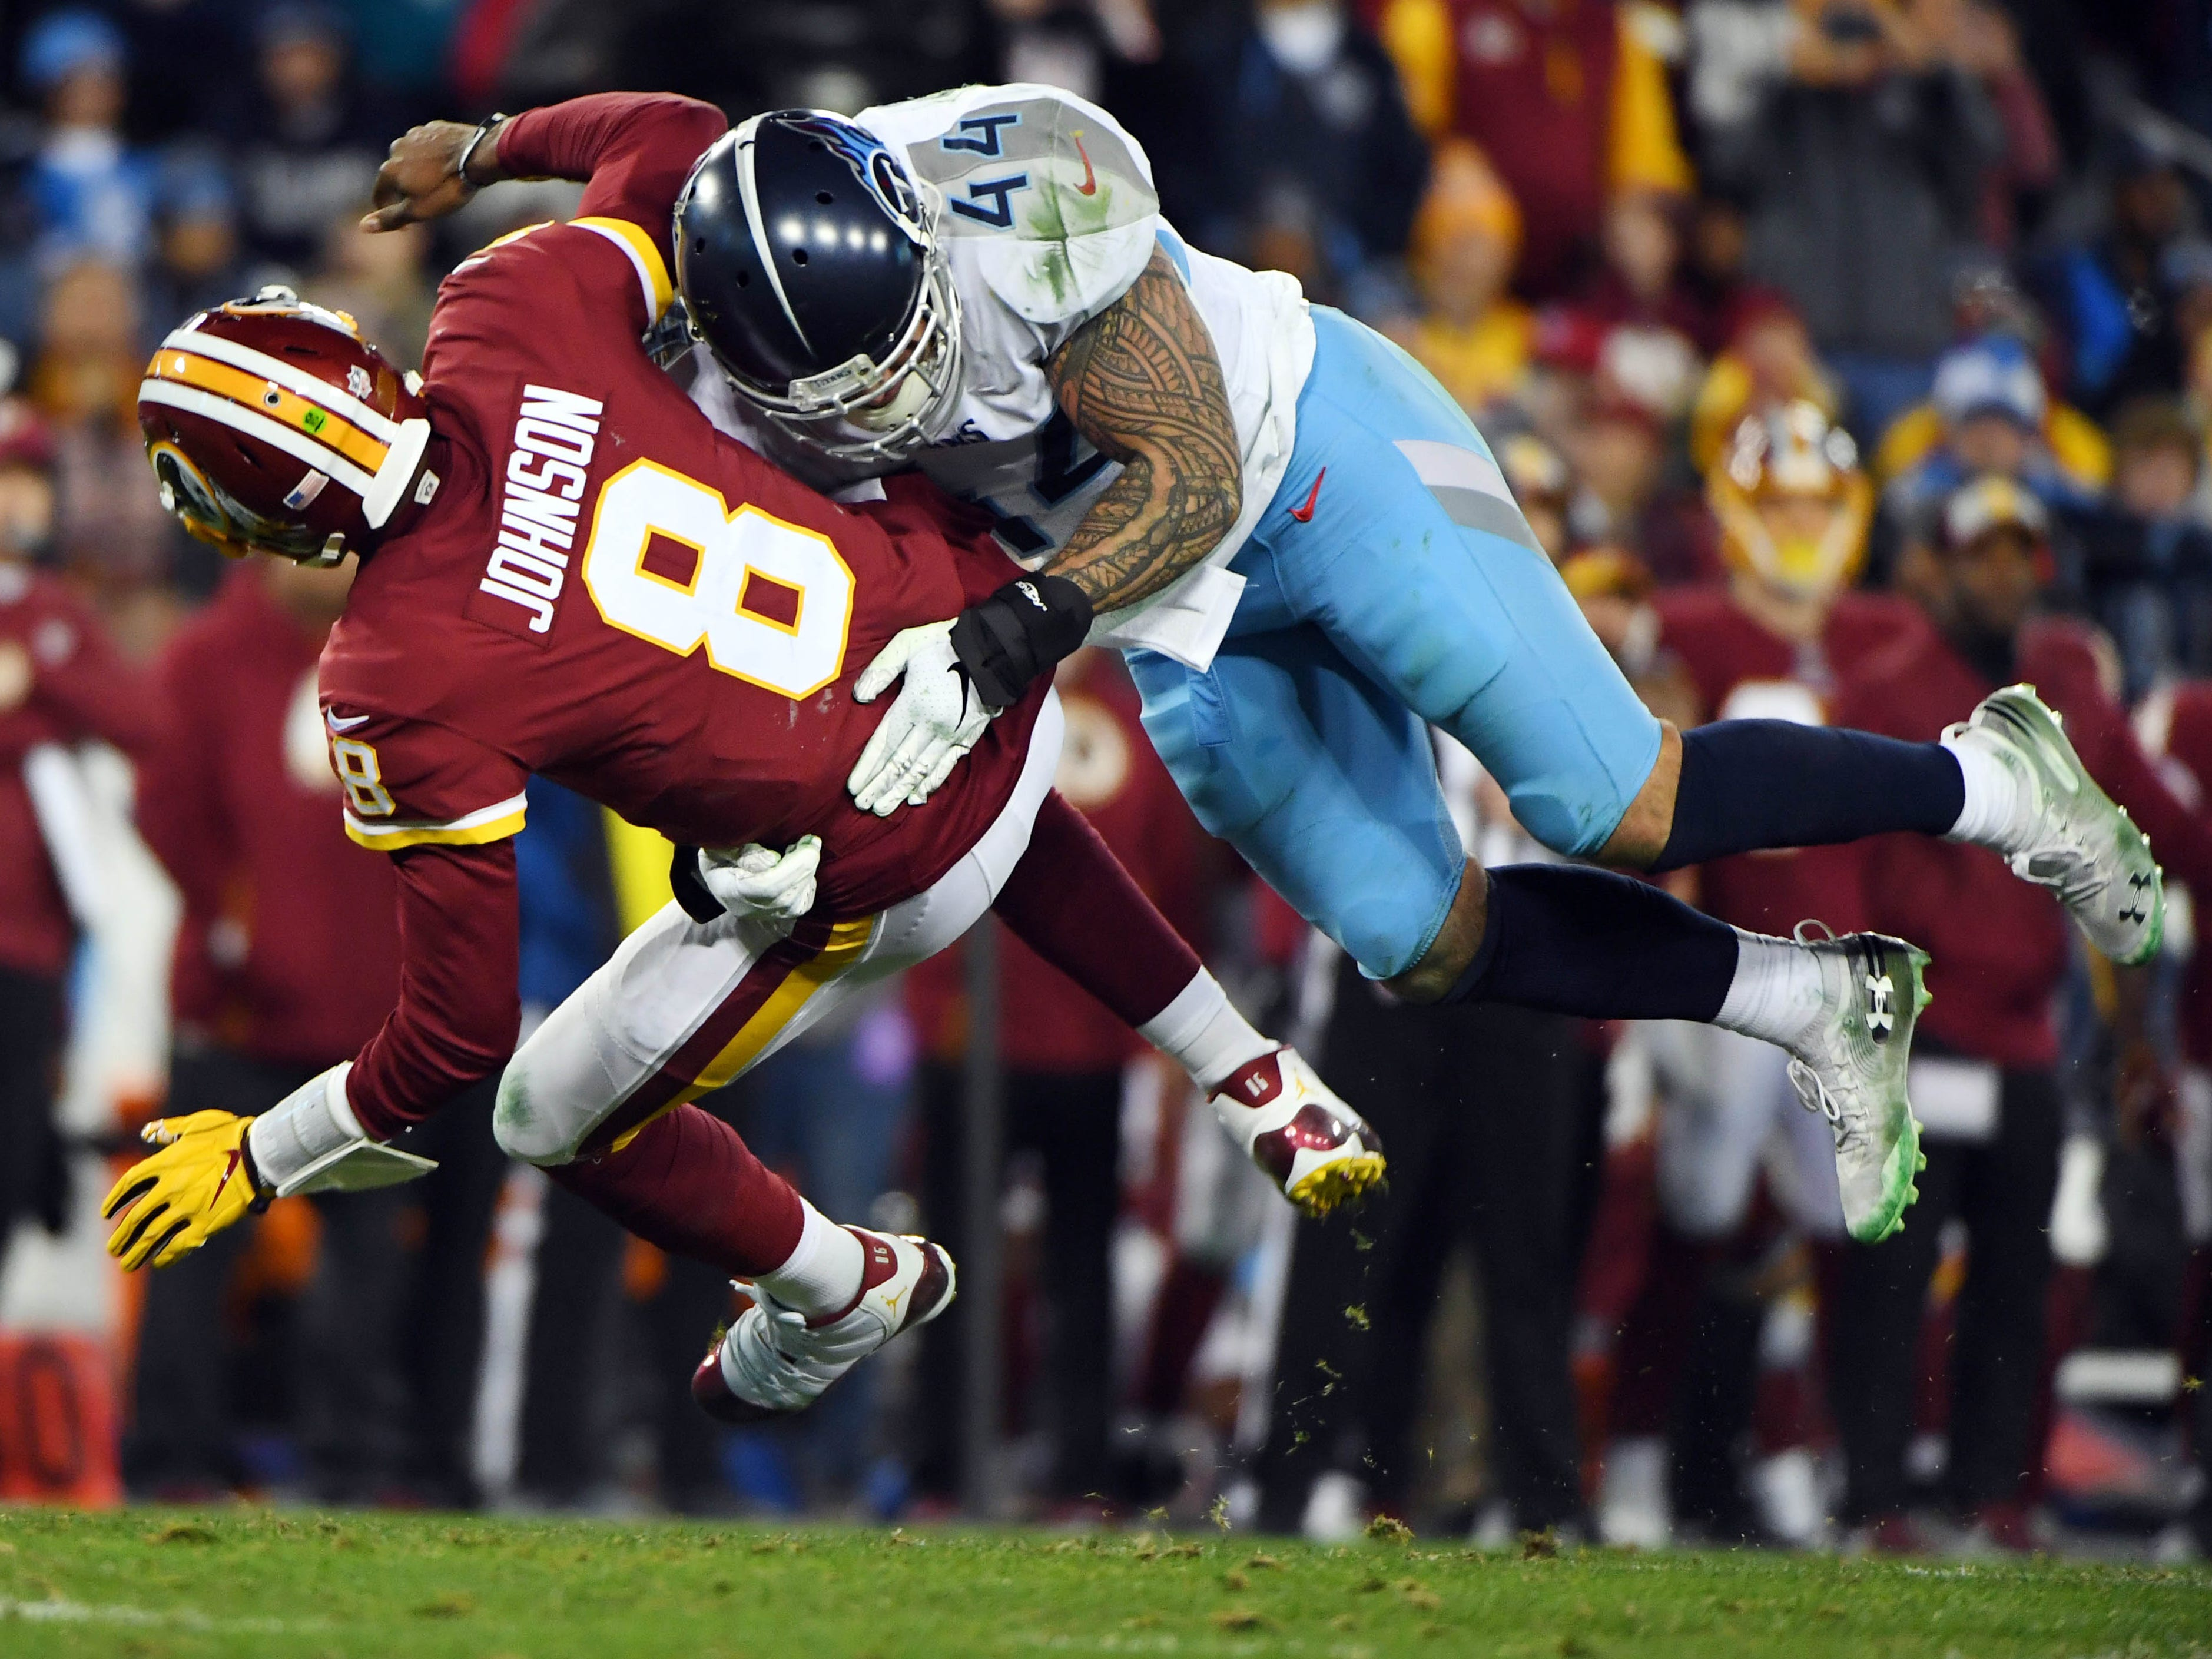 Week 16: Washington Redskins quarterback Josh Johnson is hit by Tennessee Titans outside linebacker Kamalei Correa after a pass during the second half at Nissan Stadium. The Titans won the game, 25-16.